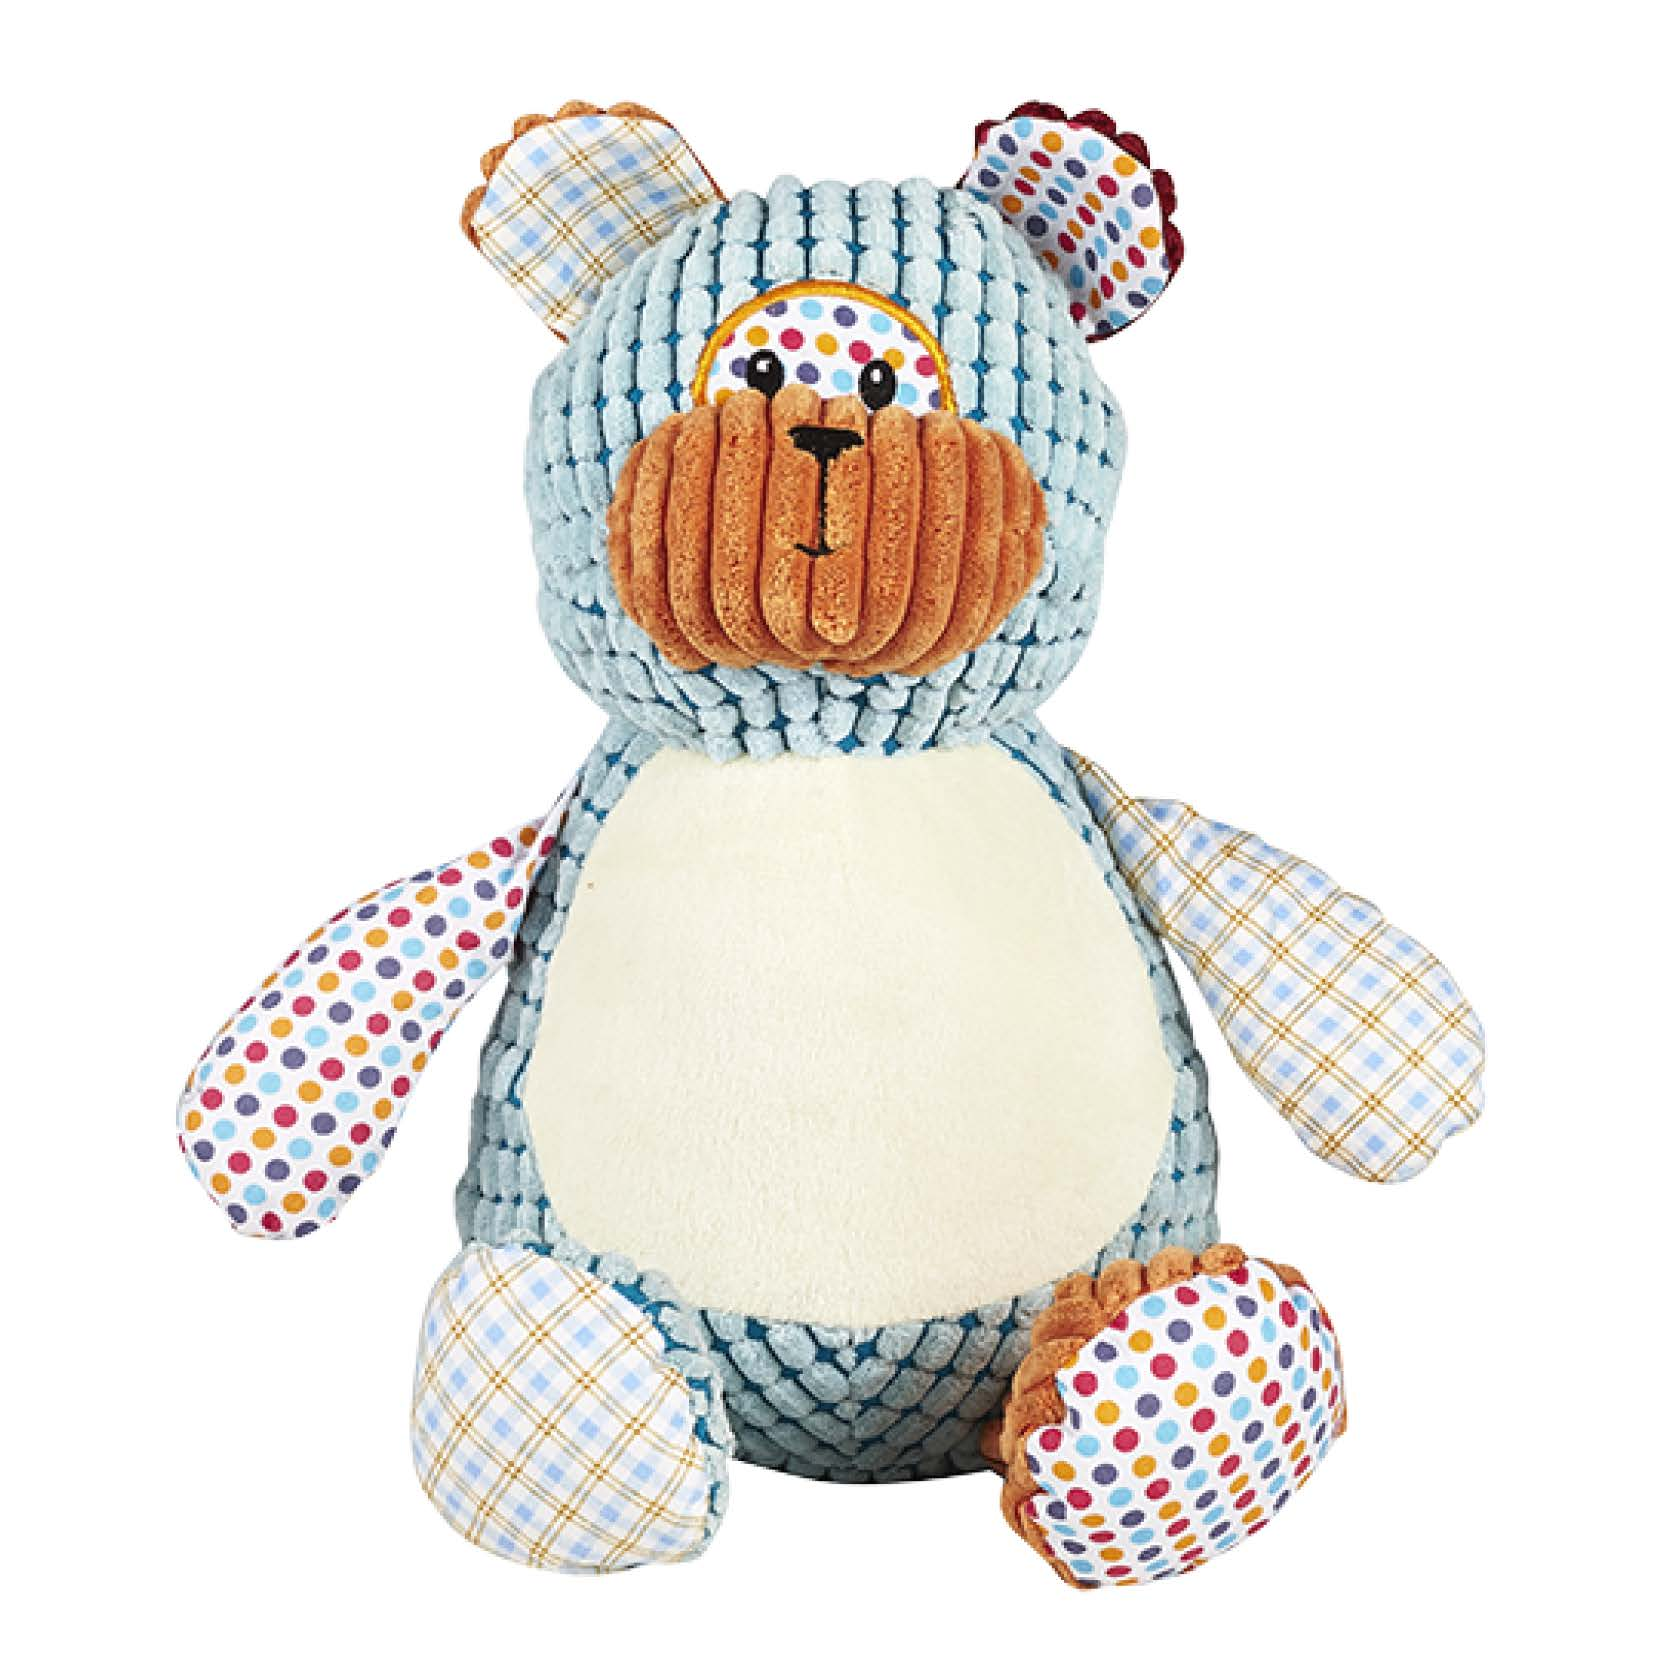 db89085c27 personalised embroidery cubbie teddy bear baby kids keepsake toy harlequin  patchwork spotted check fabric bear